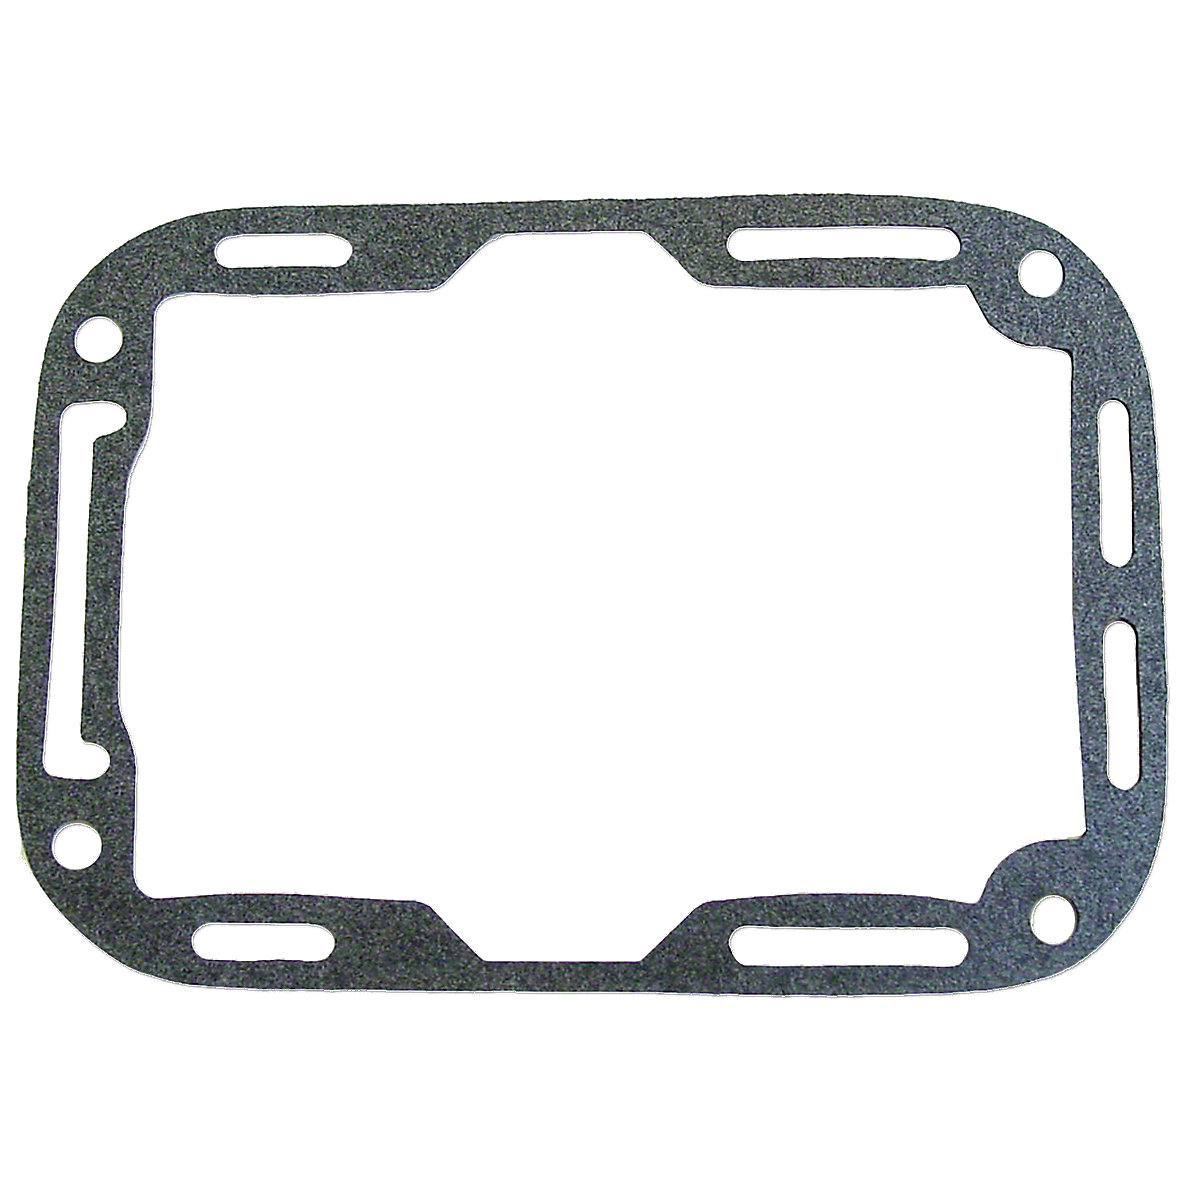 Wico Magneto End Cap Gasket For Allis Chalmers: B, C, RC, WC, WD, WF.